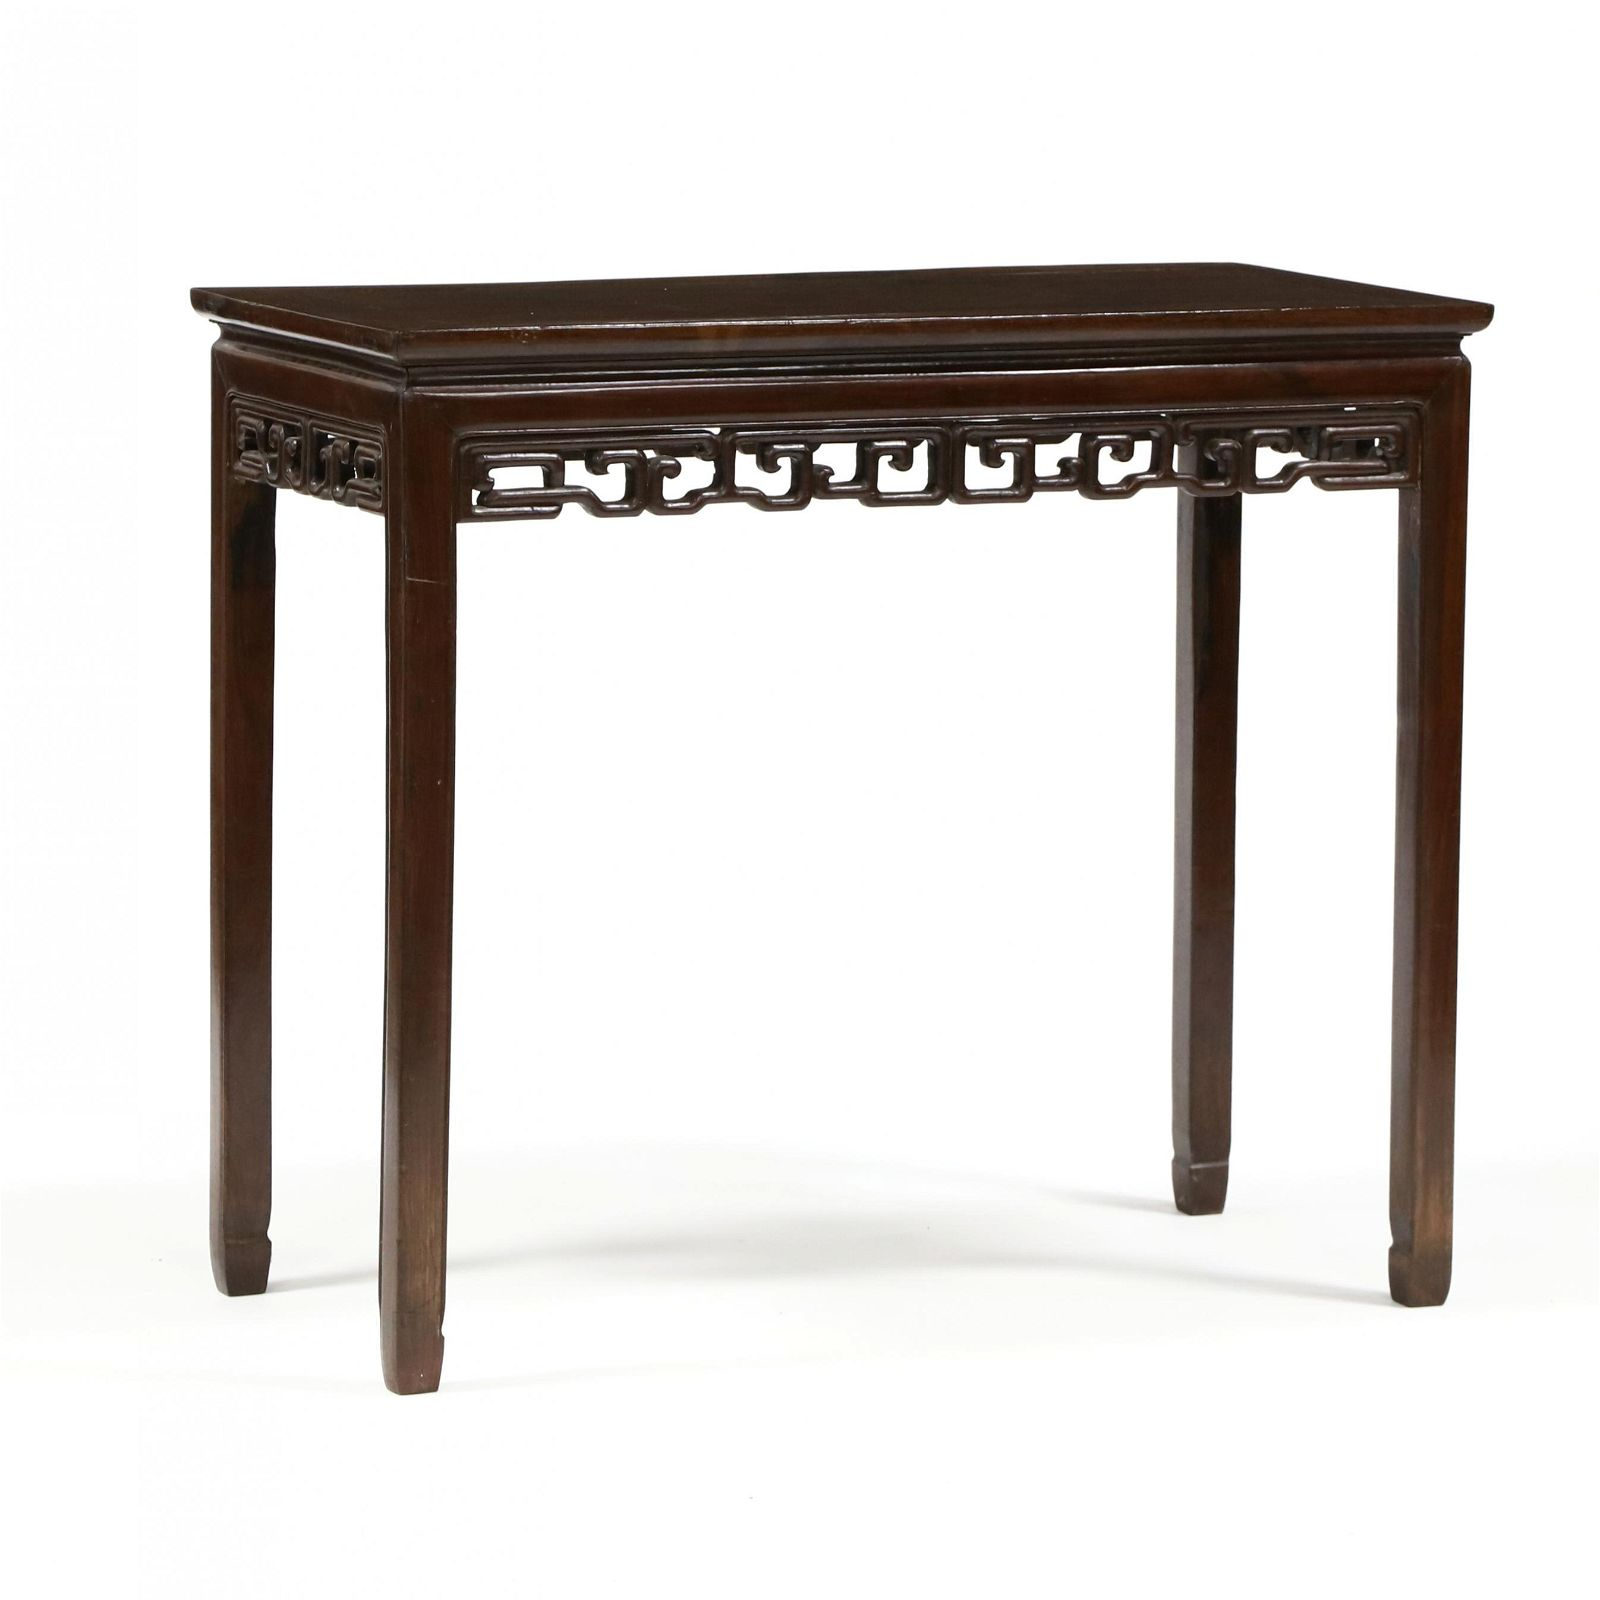 An Antique Chinese Carved Hardwood Console Table